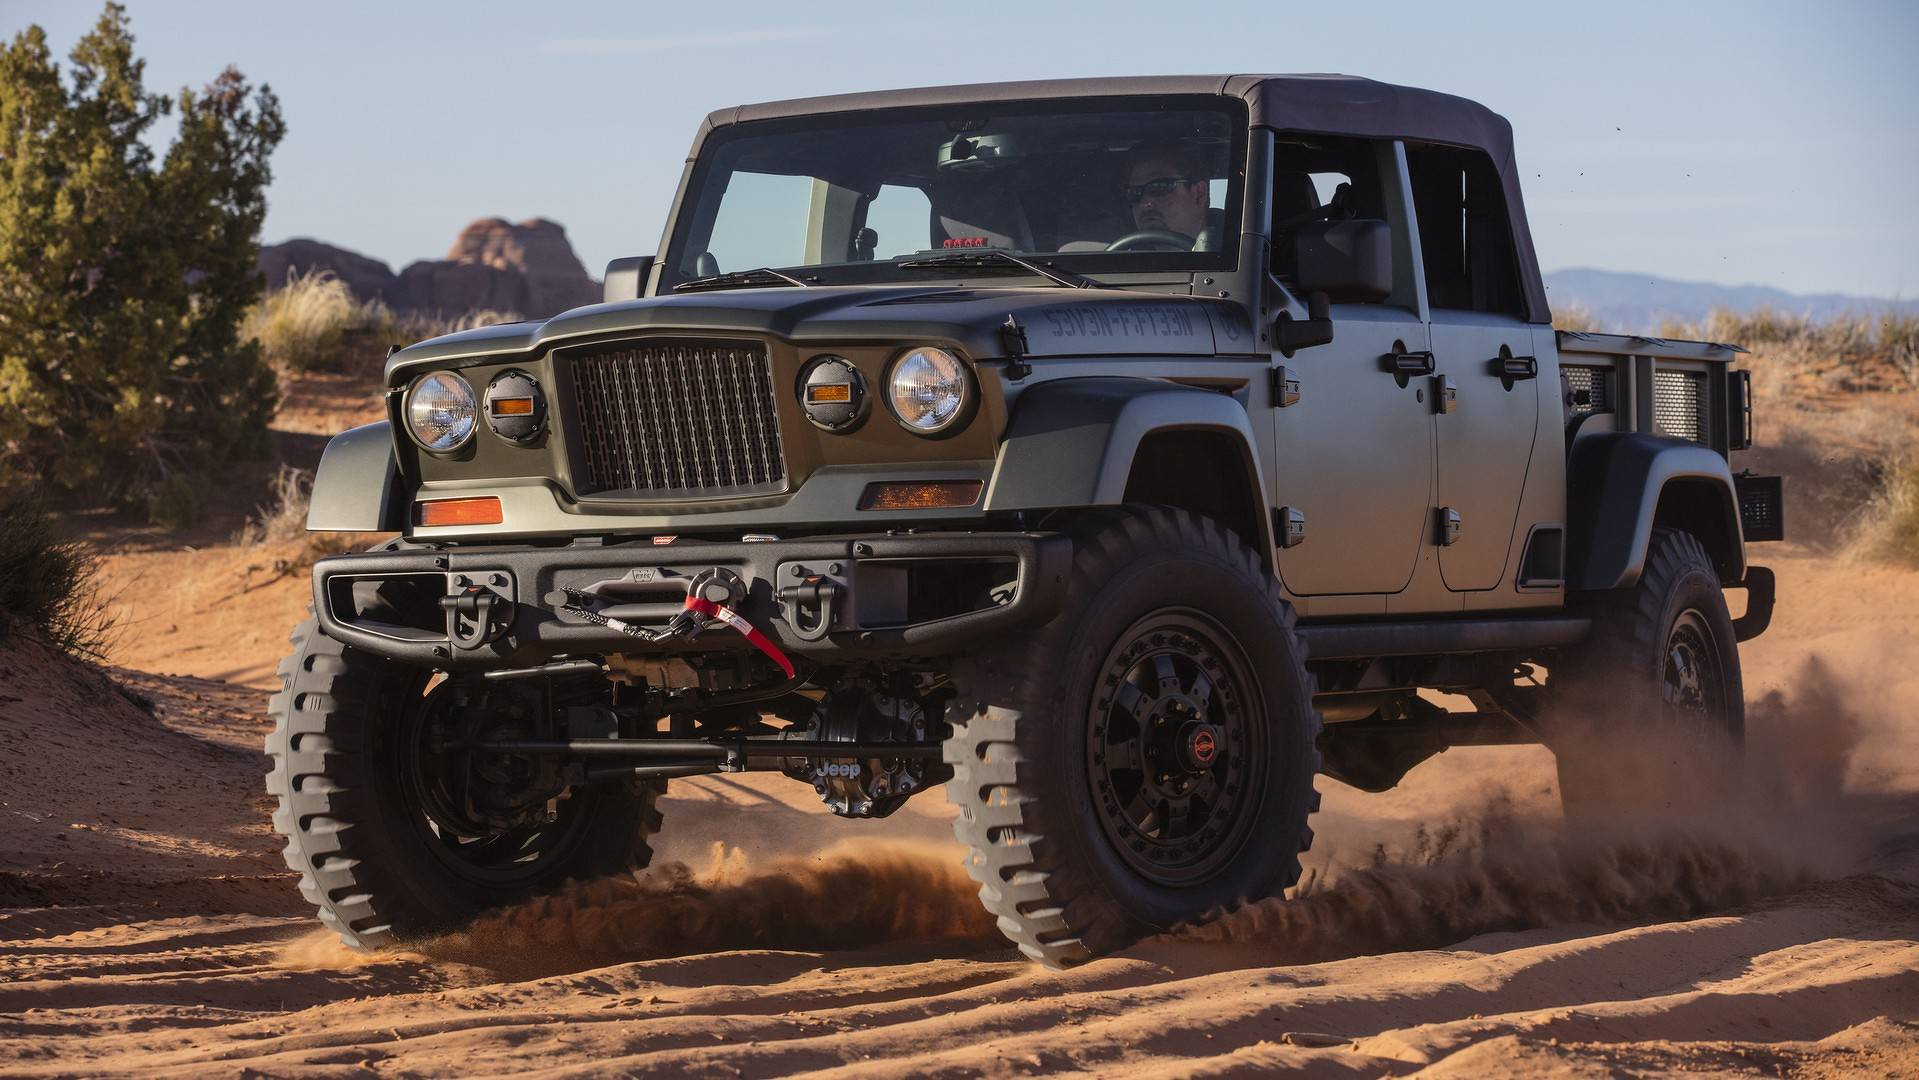 Jeep chief 715 price